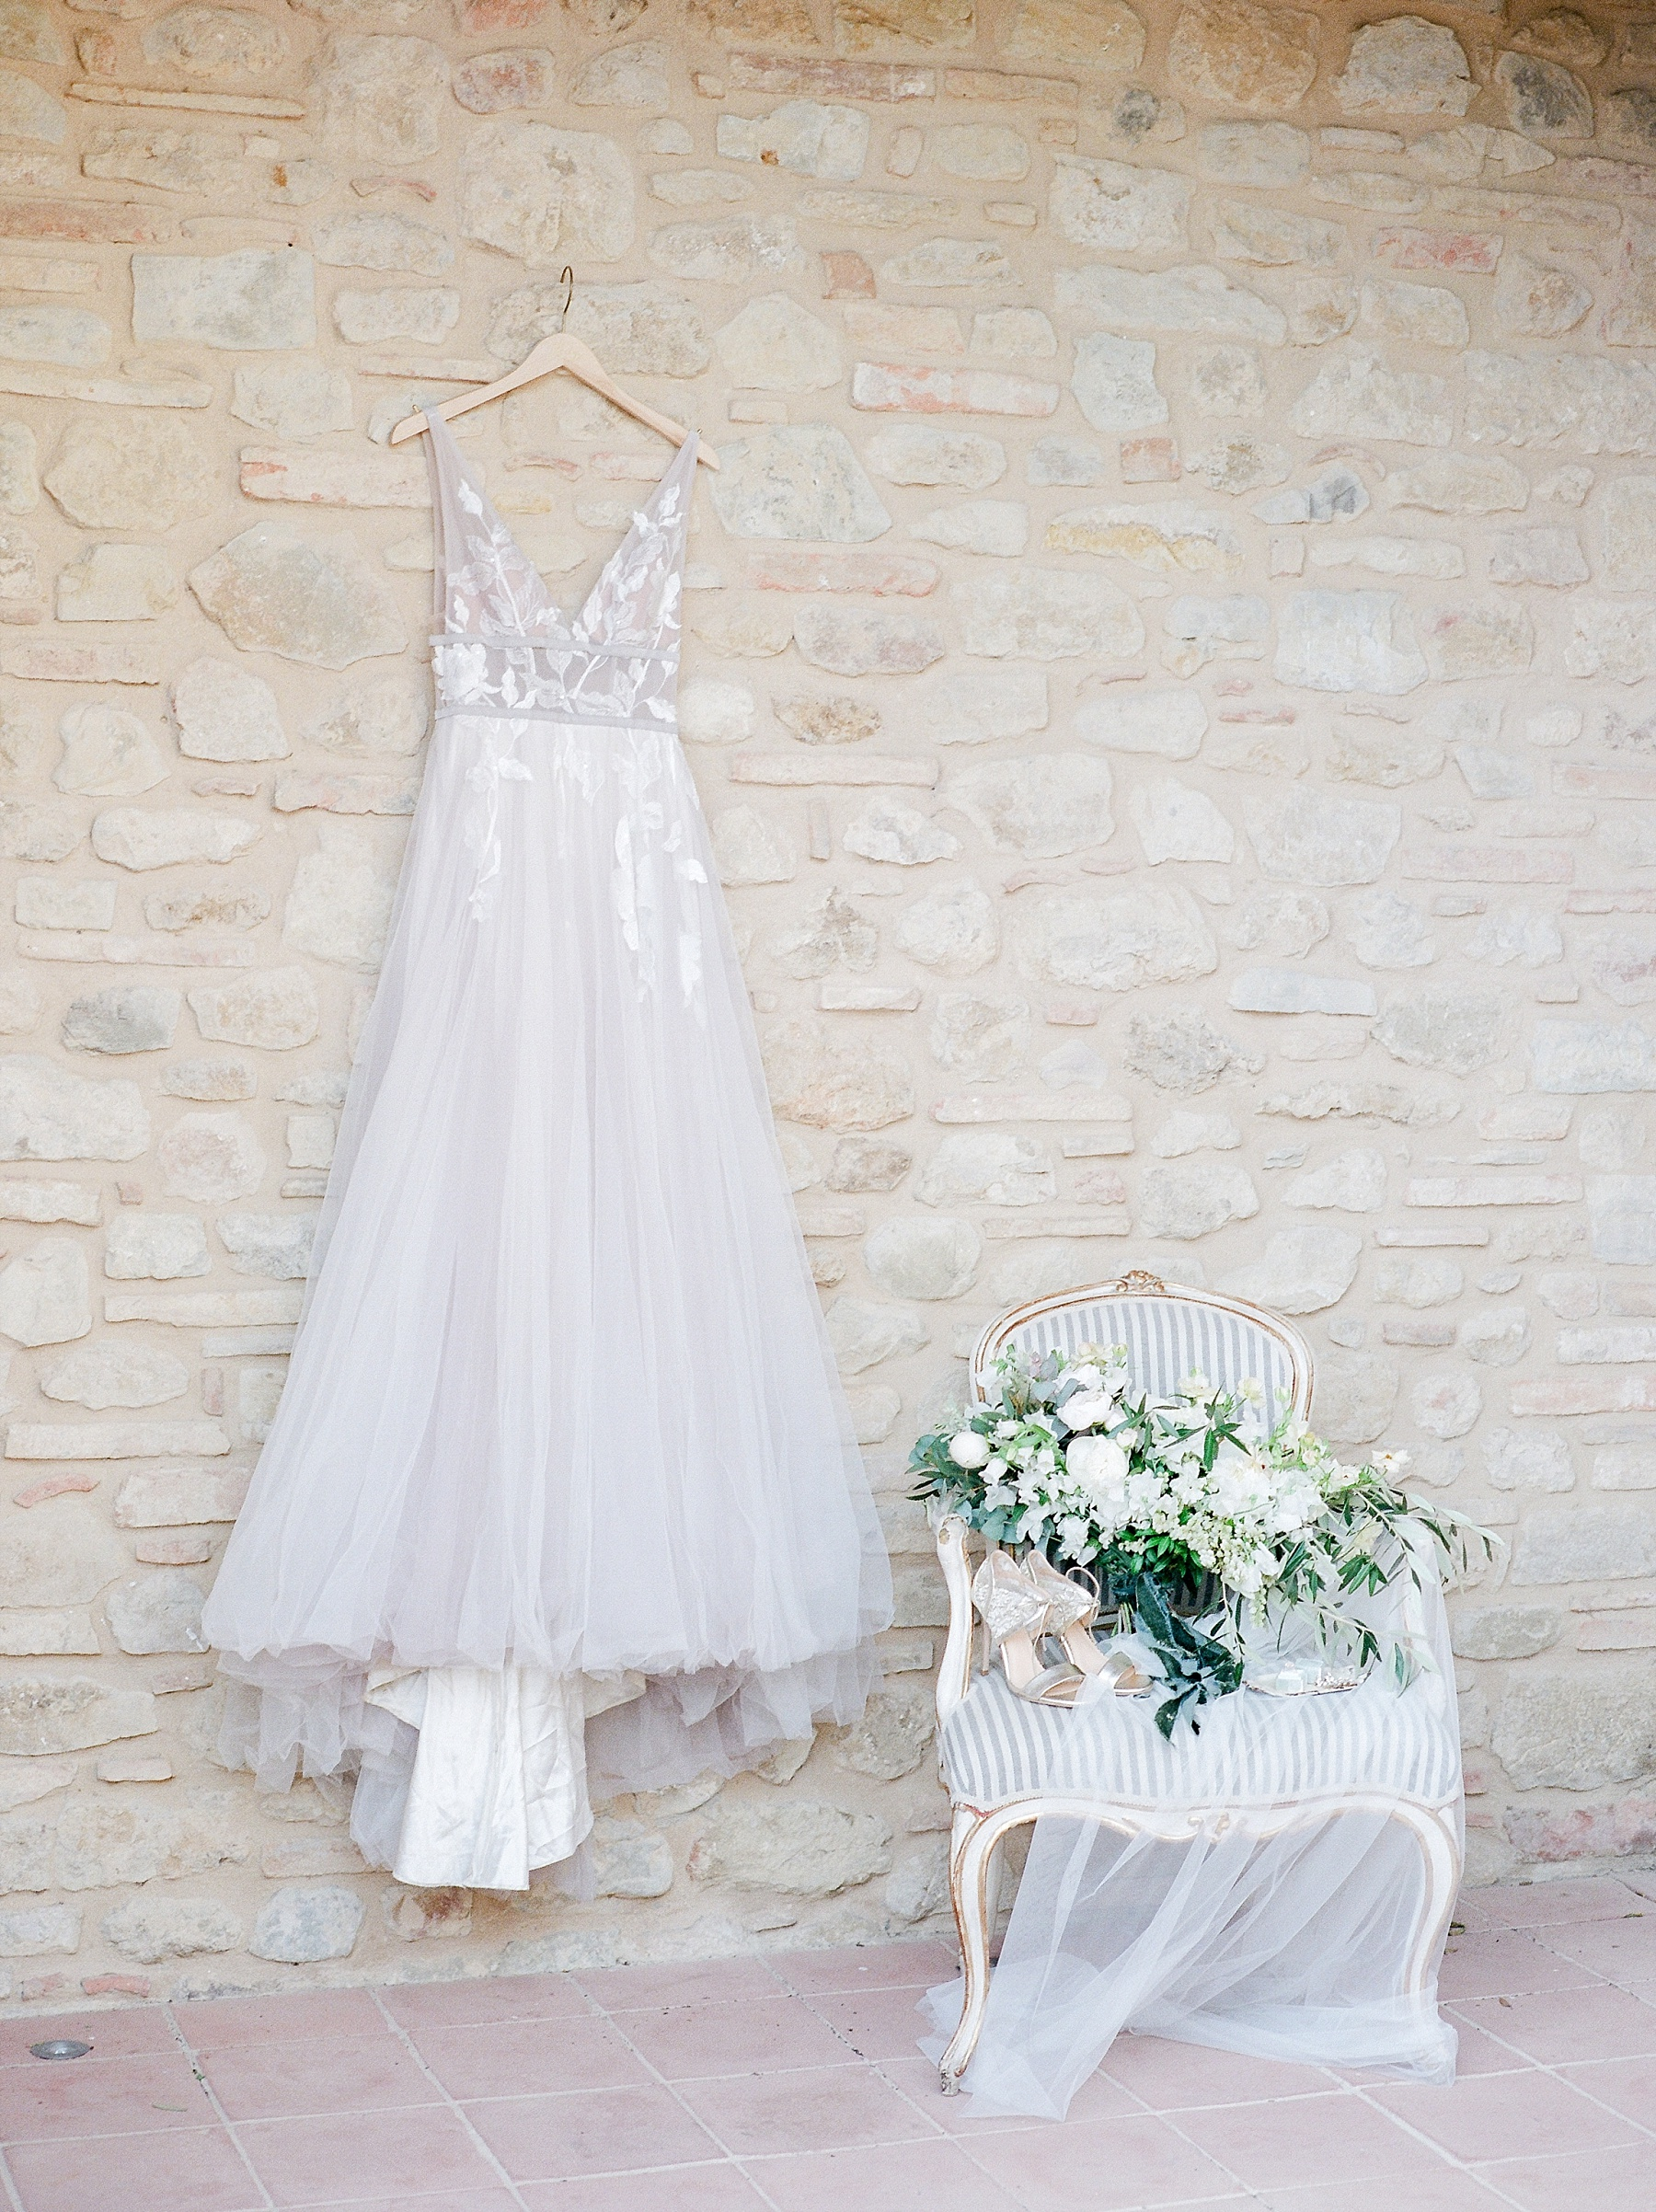 All White Destination Wedding in the Hills of Tuscany Italy at Estate Borgo Petrognano by Kelsi Kliethermes Photography_0004.jpg